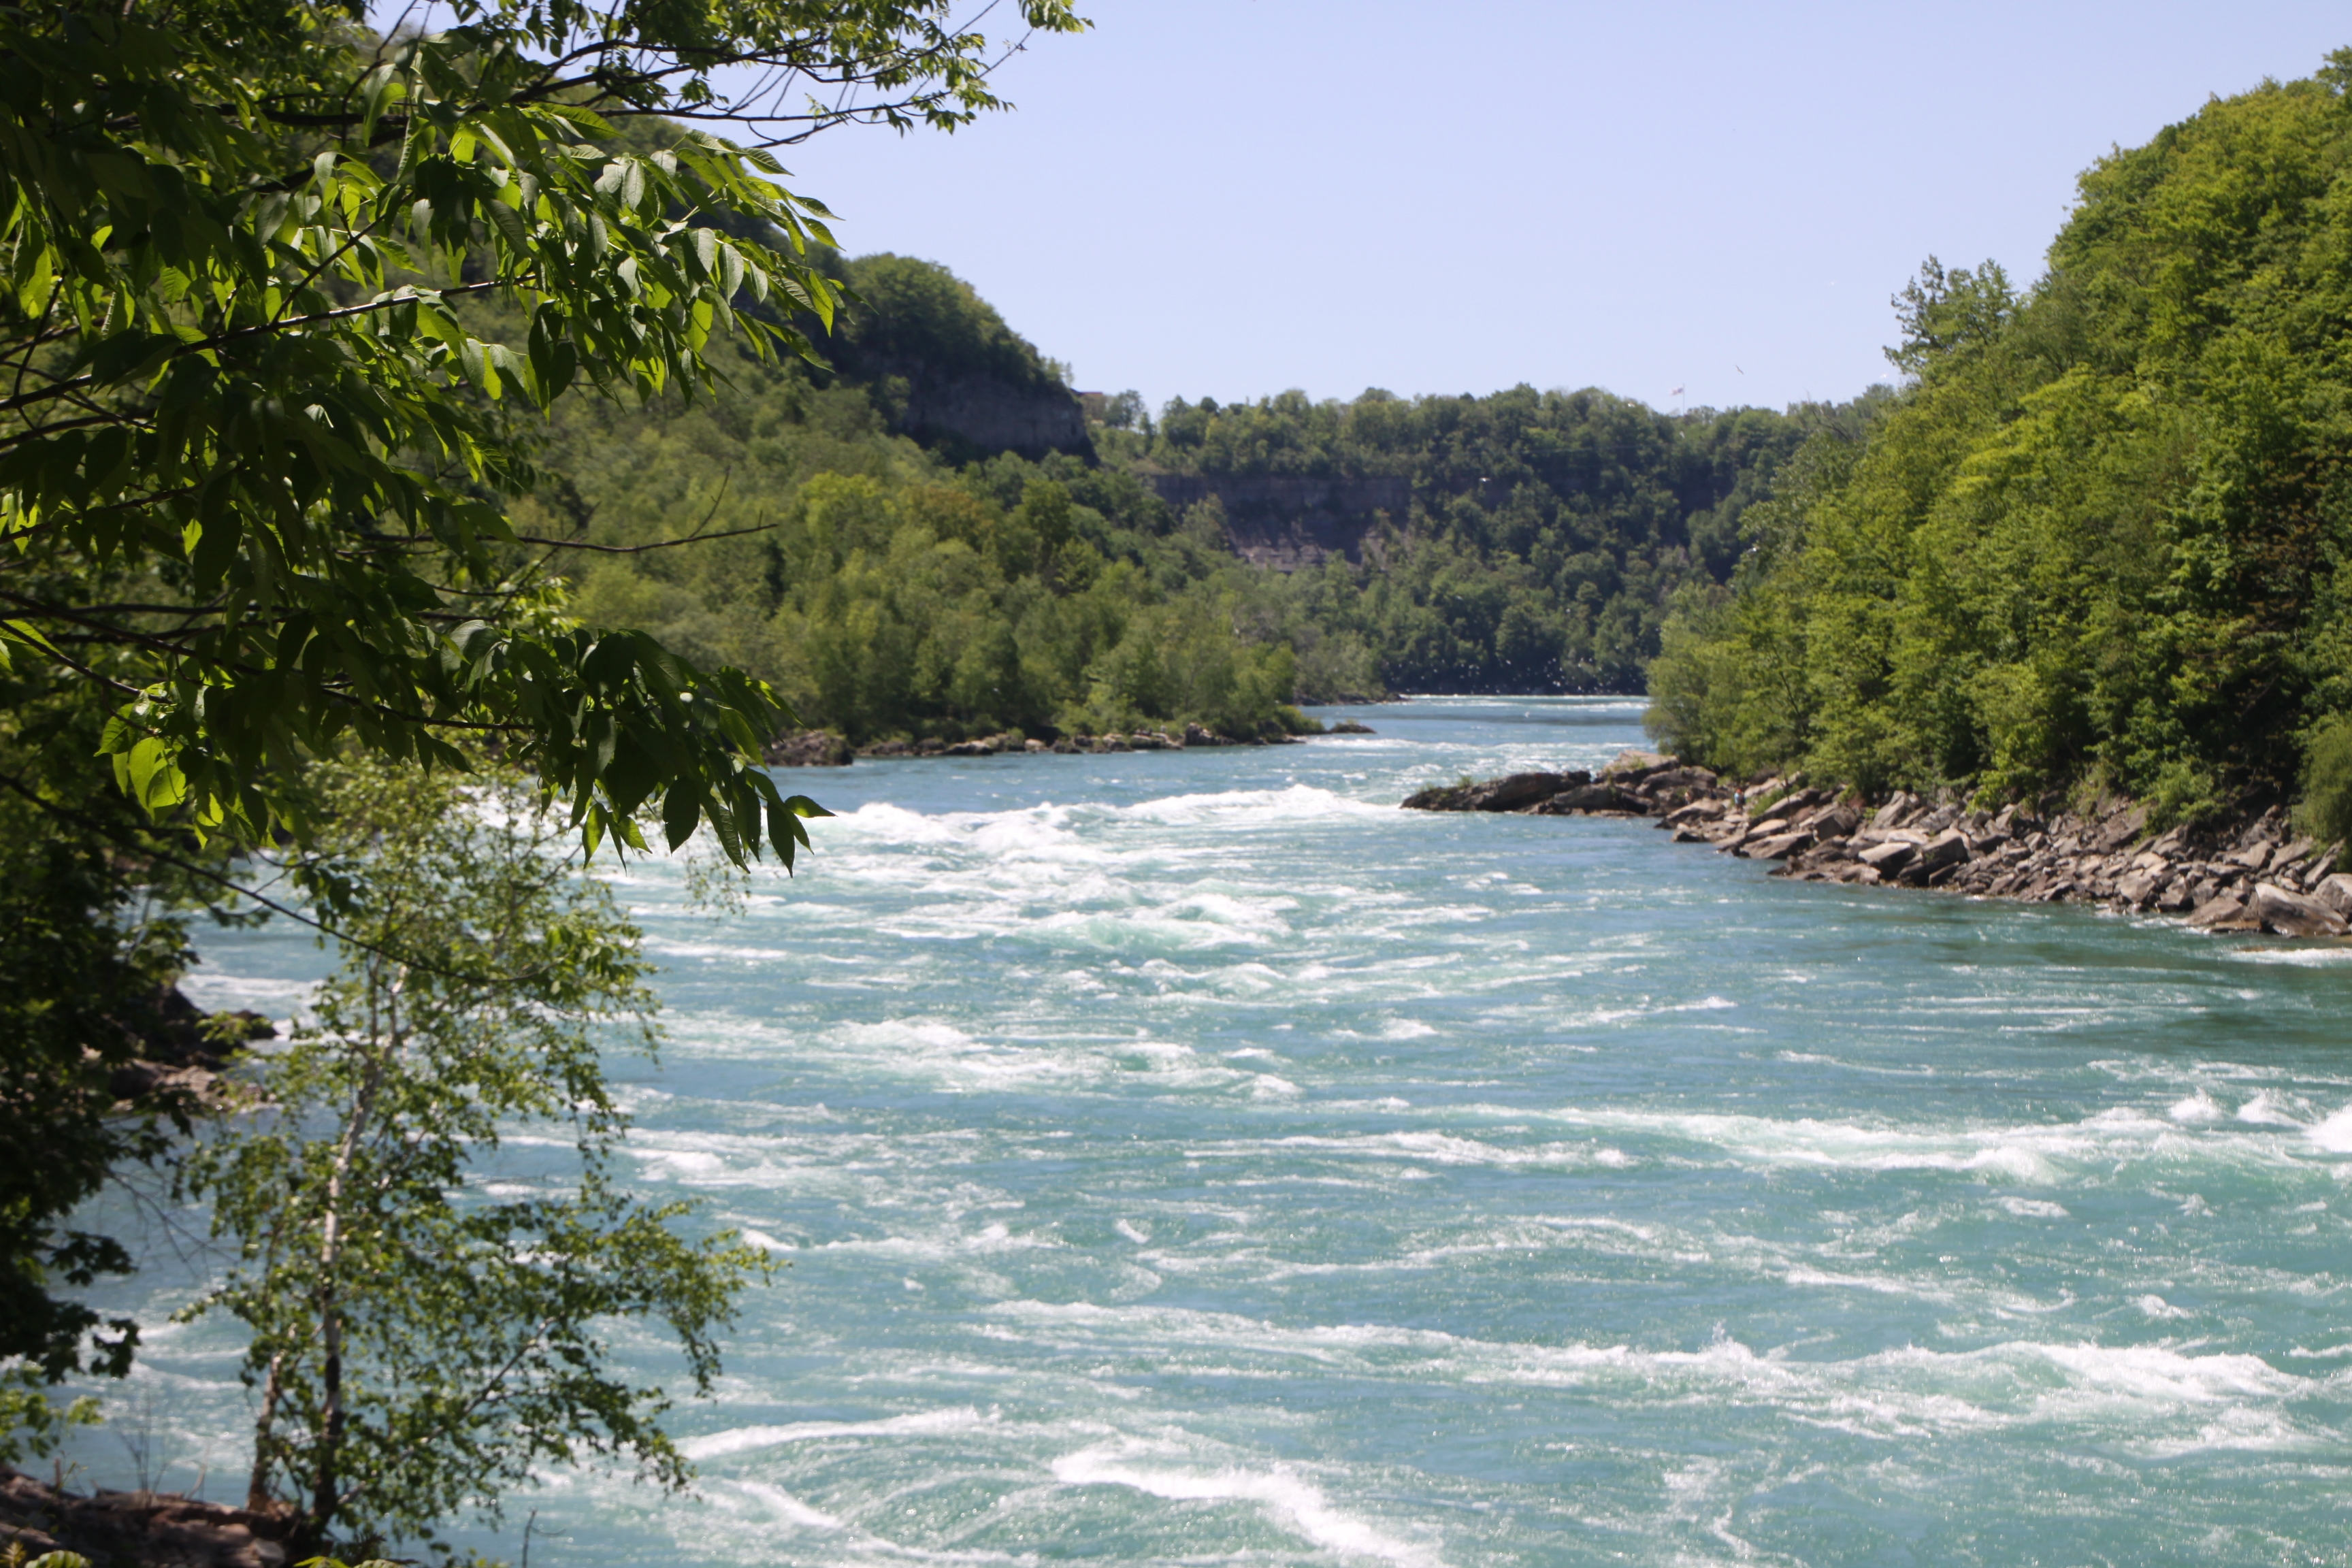 How to see the Niagara Gorge in a whole new light